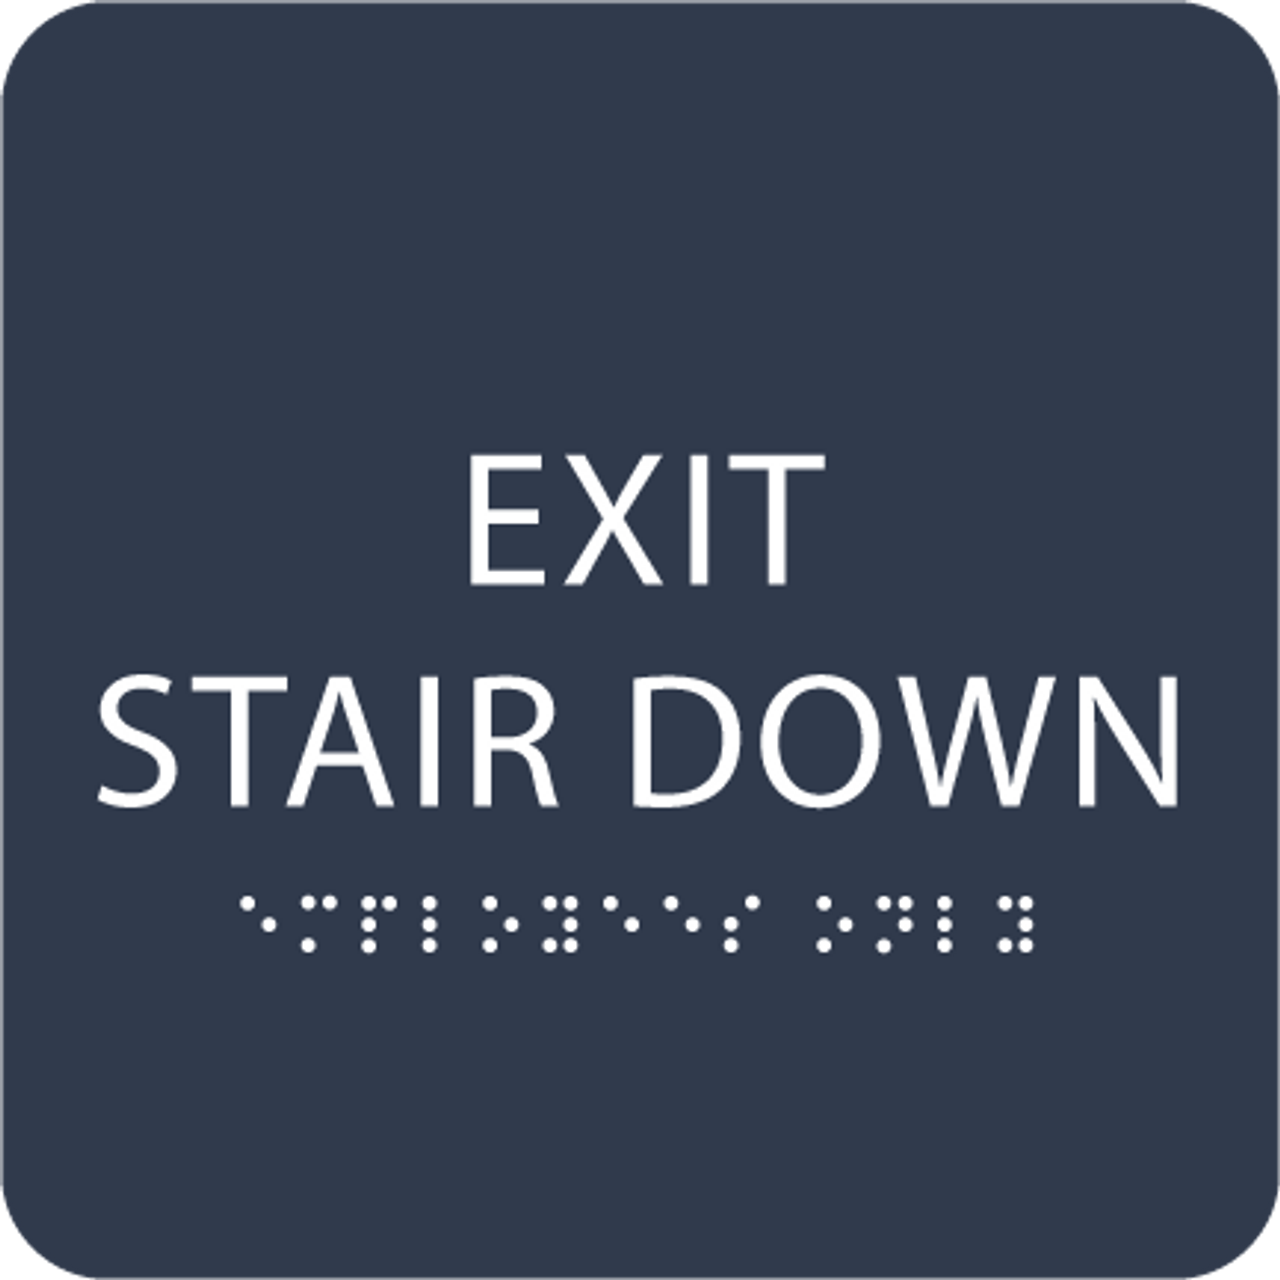 Navy Exit Stair Down ADA Sign